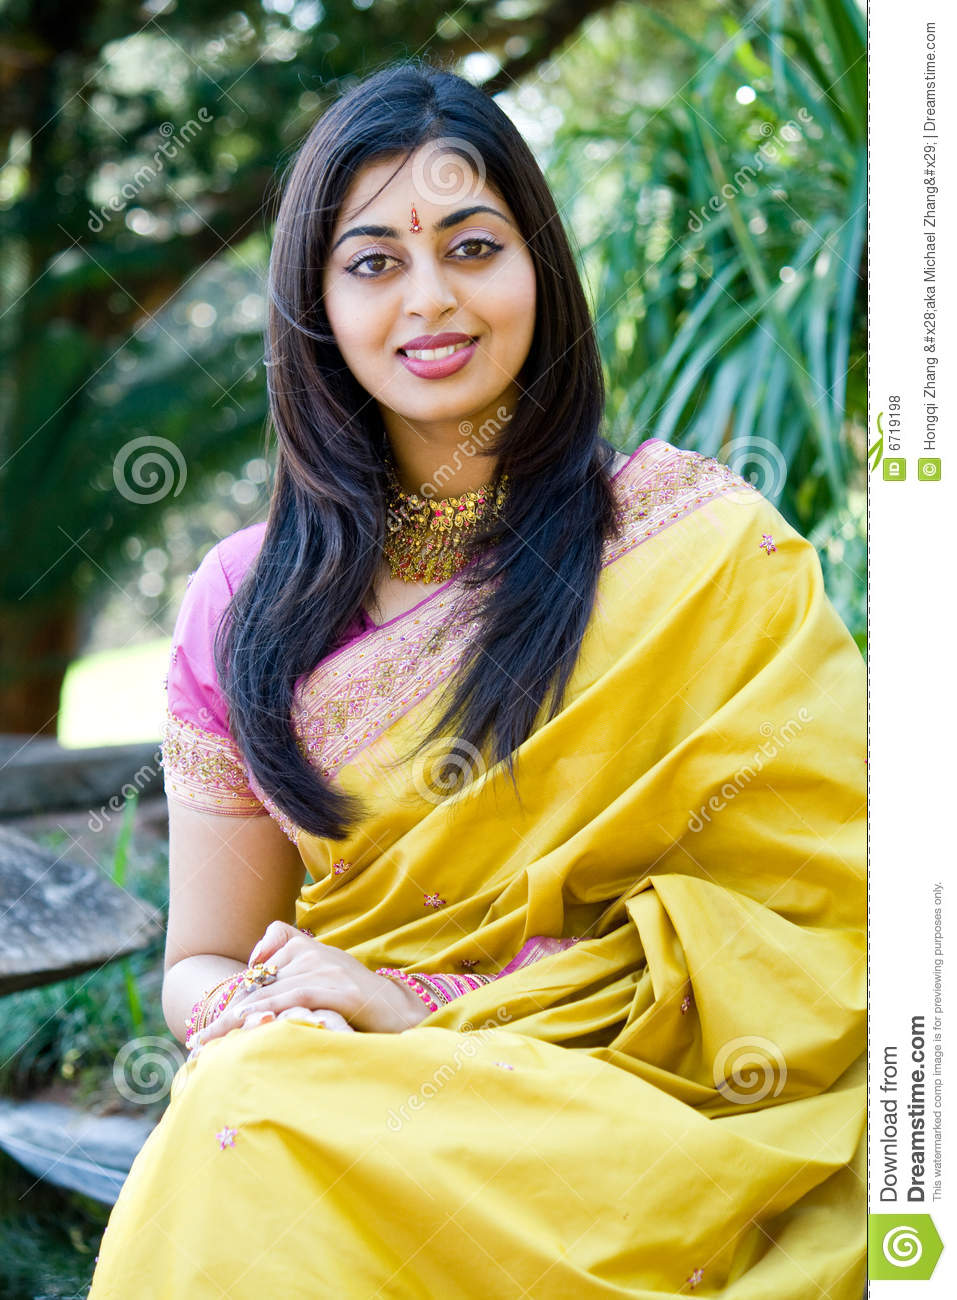 Indian Woman Stock Photo Image Of Asia Attire Alone